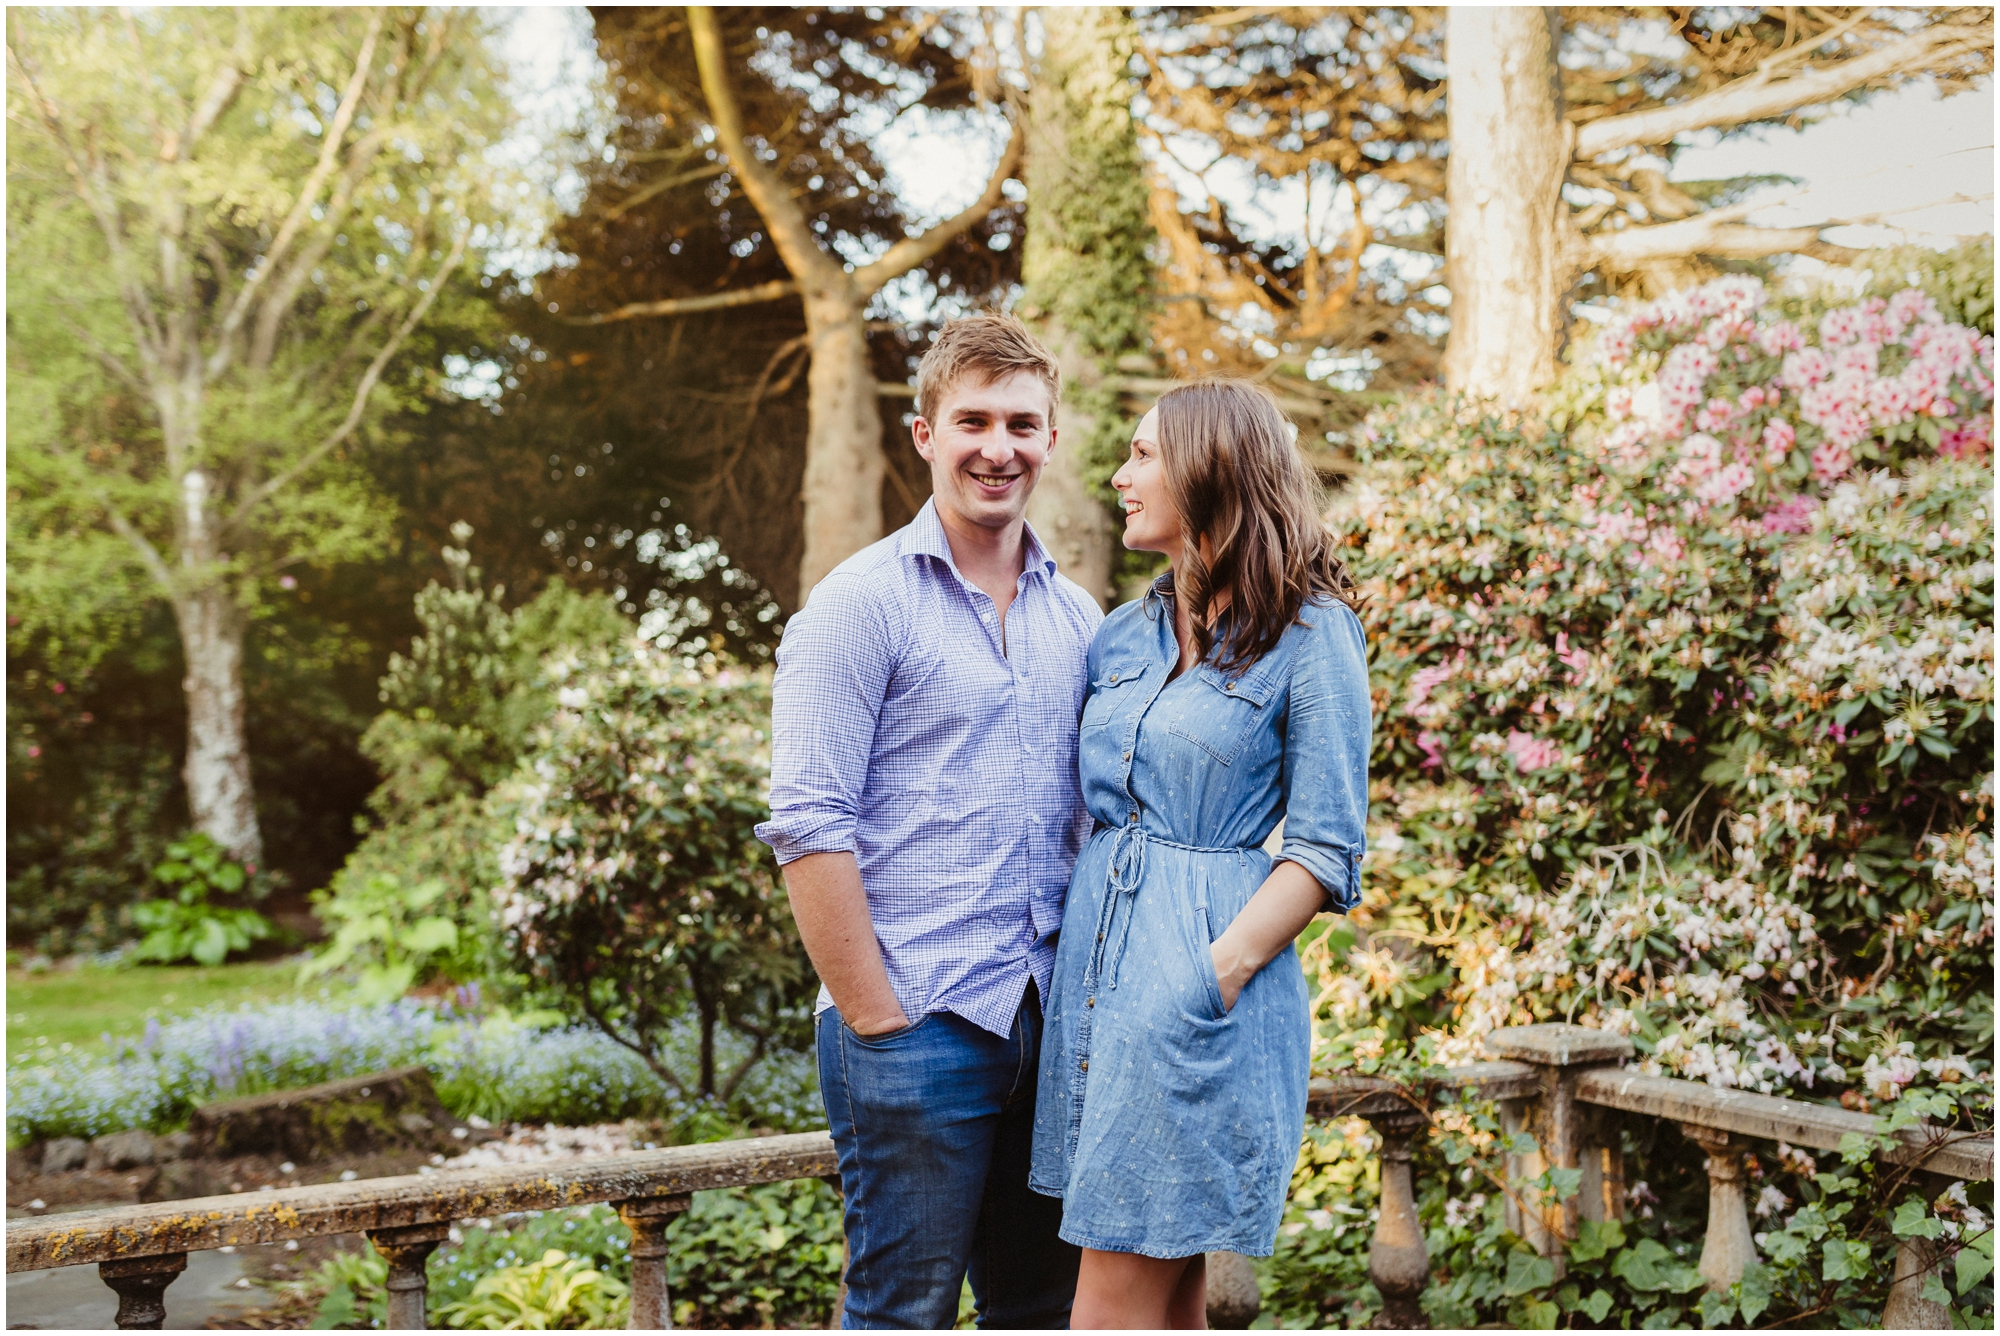 Aidan and Laura's Engagement Shoot in Isaac Heritage Village